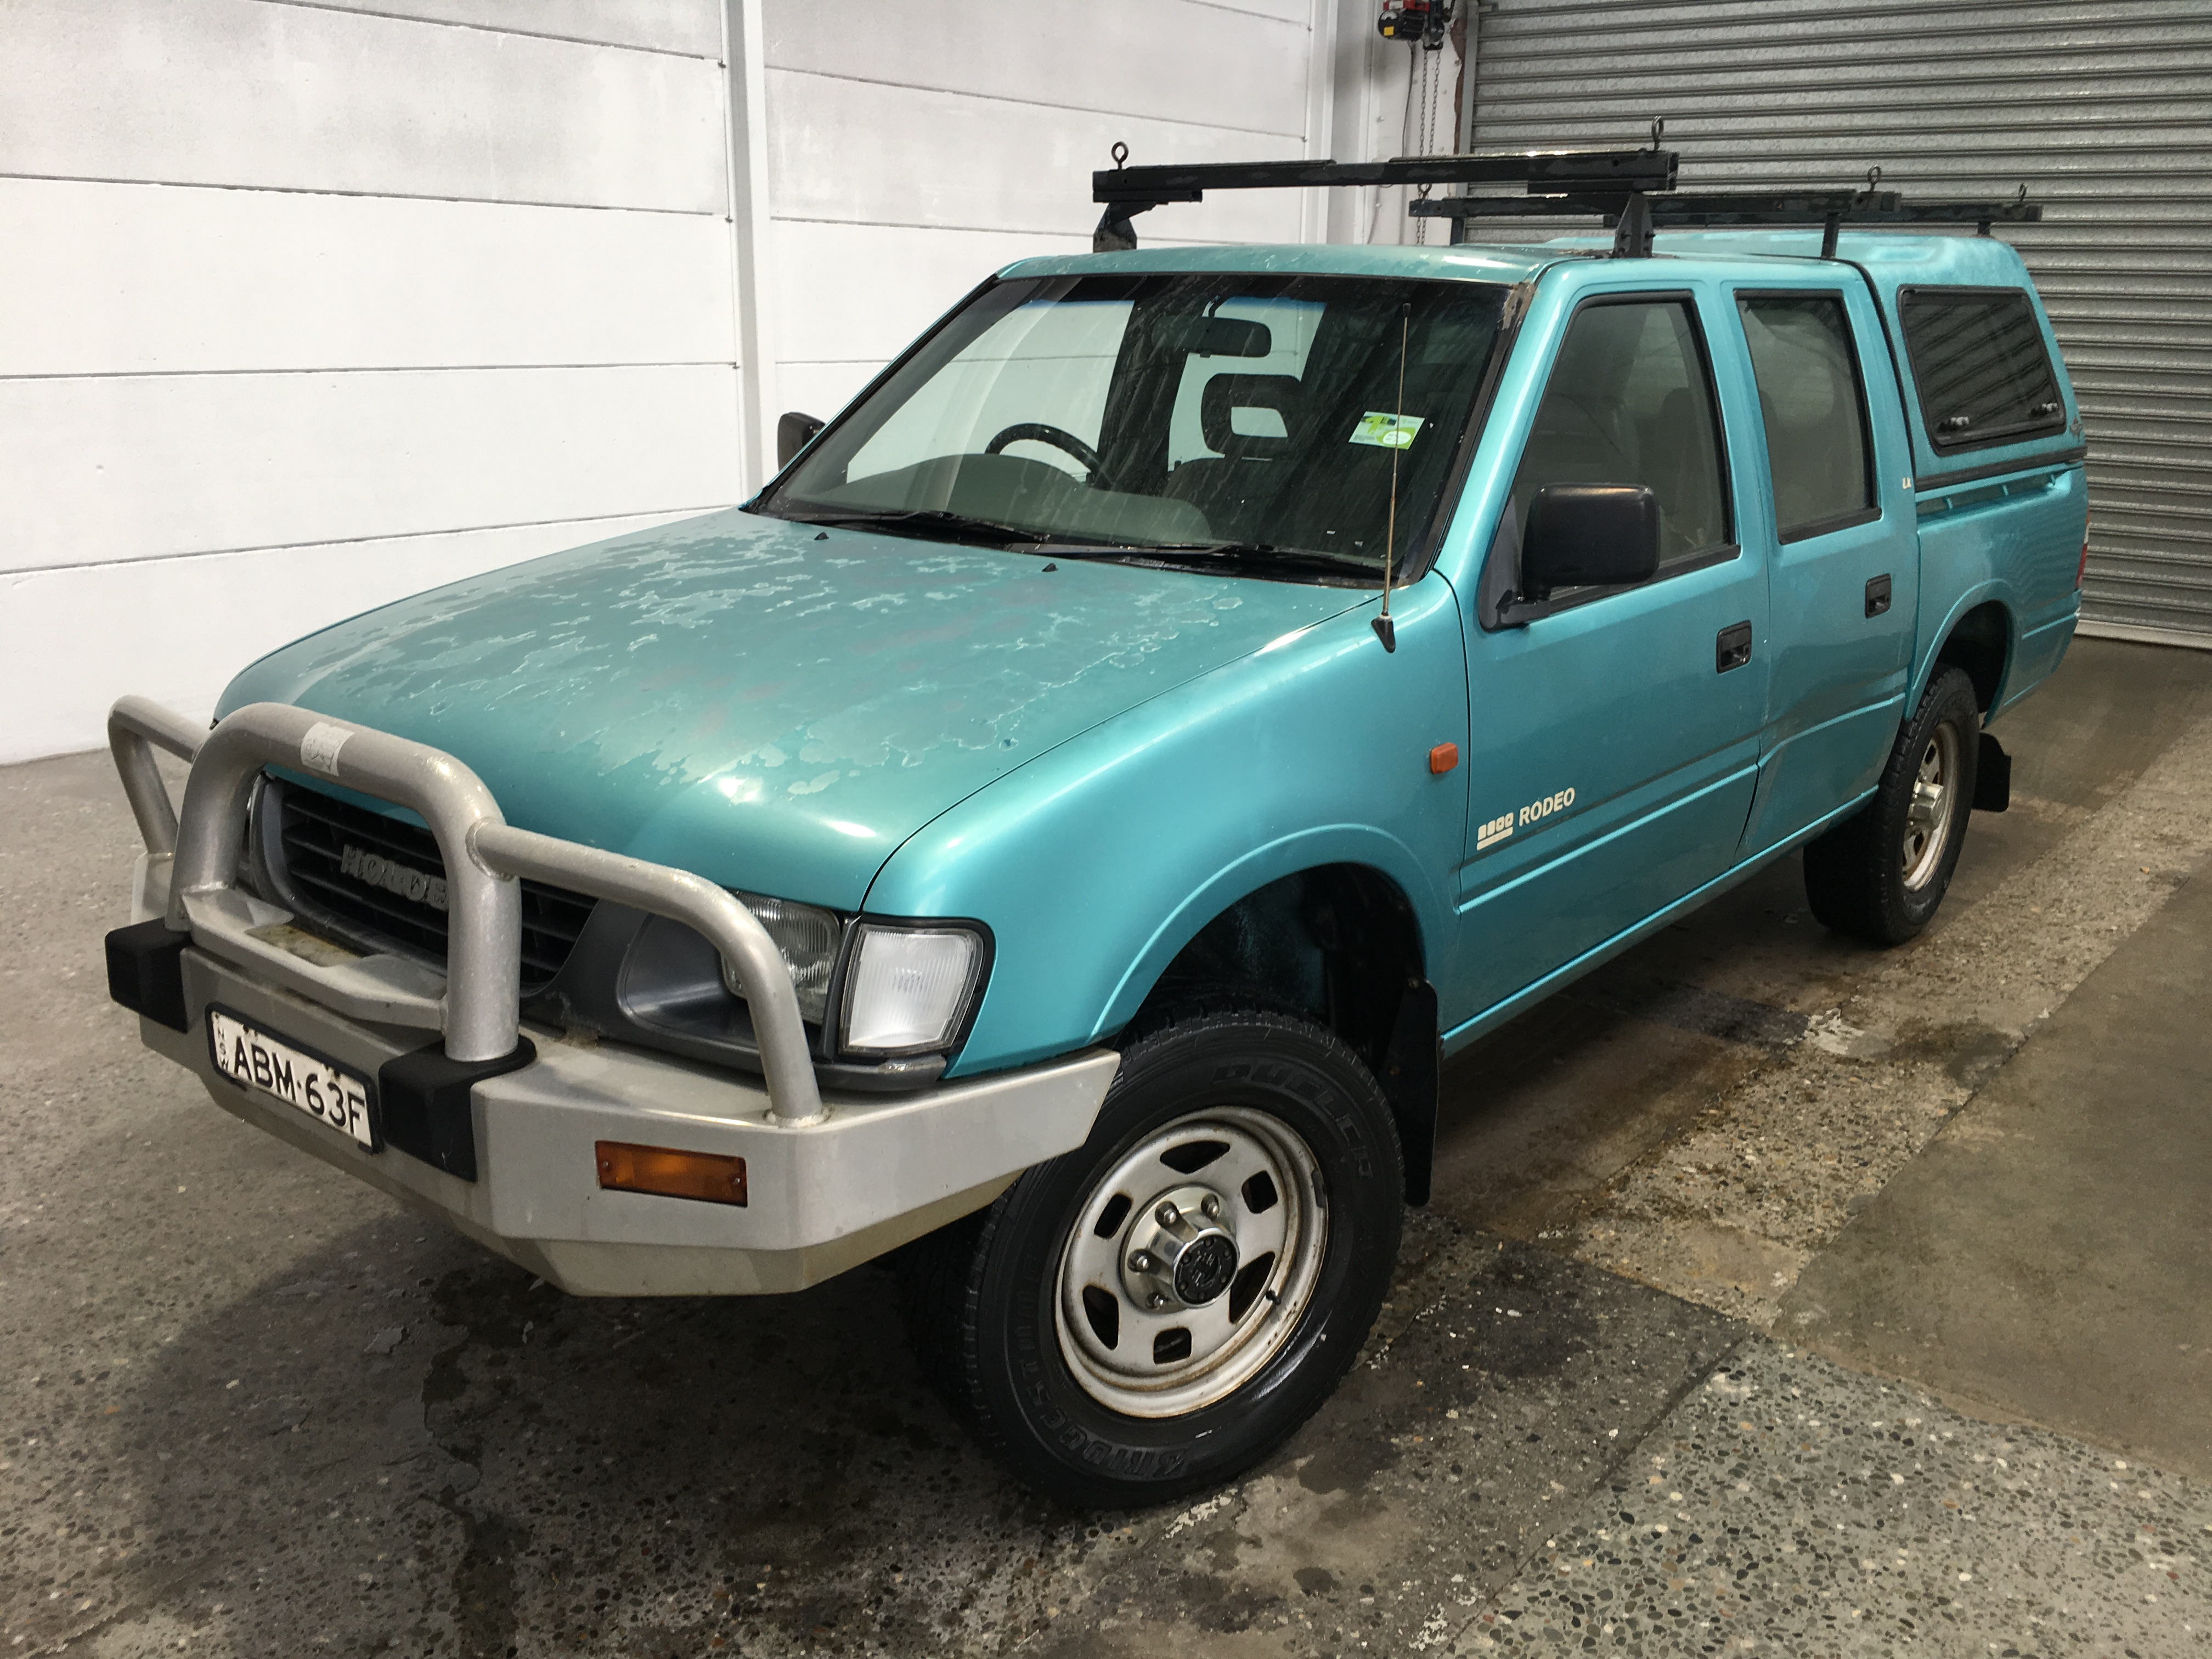 1997 Holden Rodeo LX (4x4) Turbo Diesel Manual Dual Cab